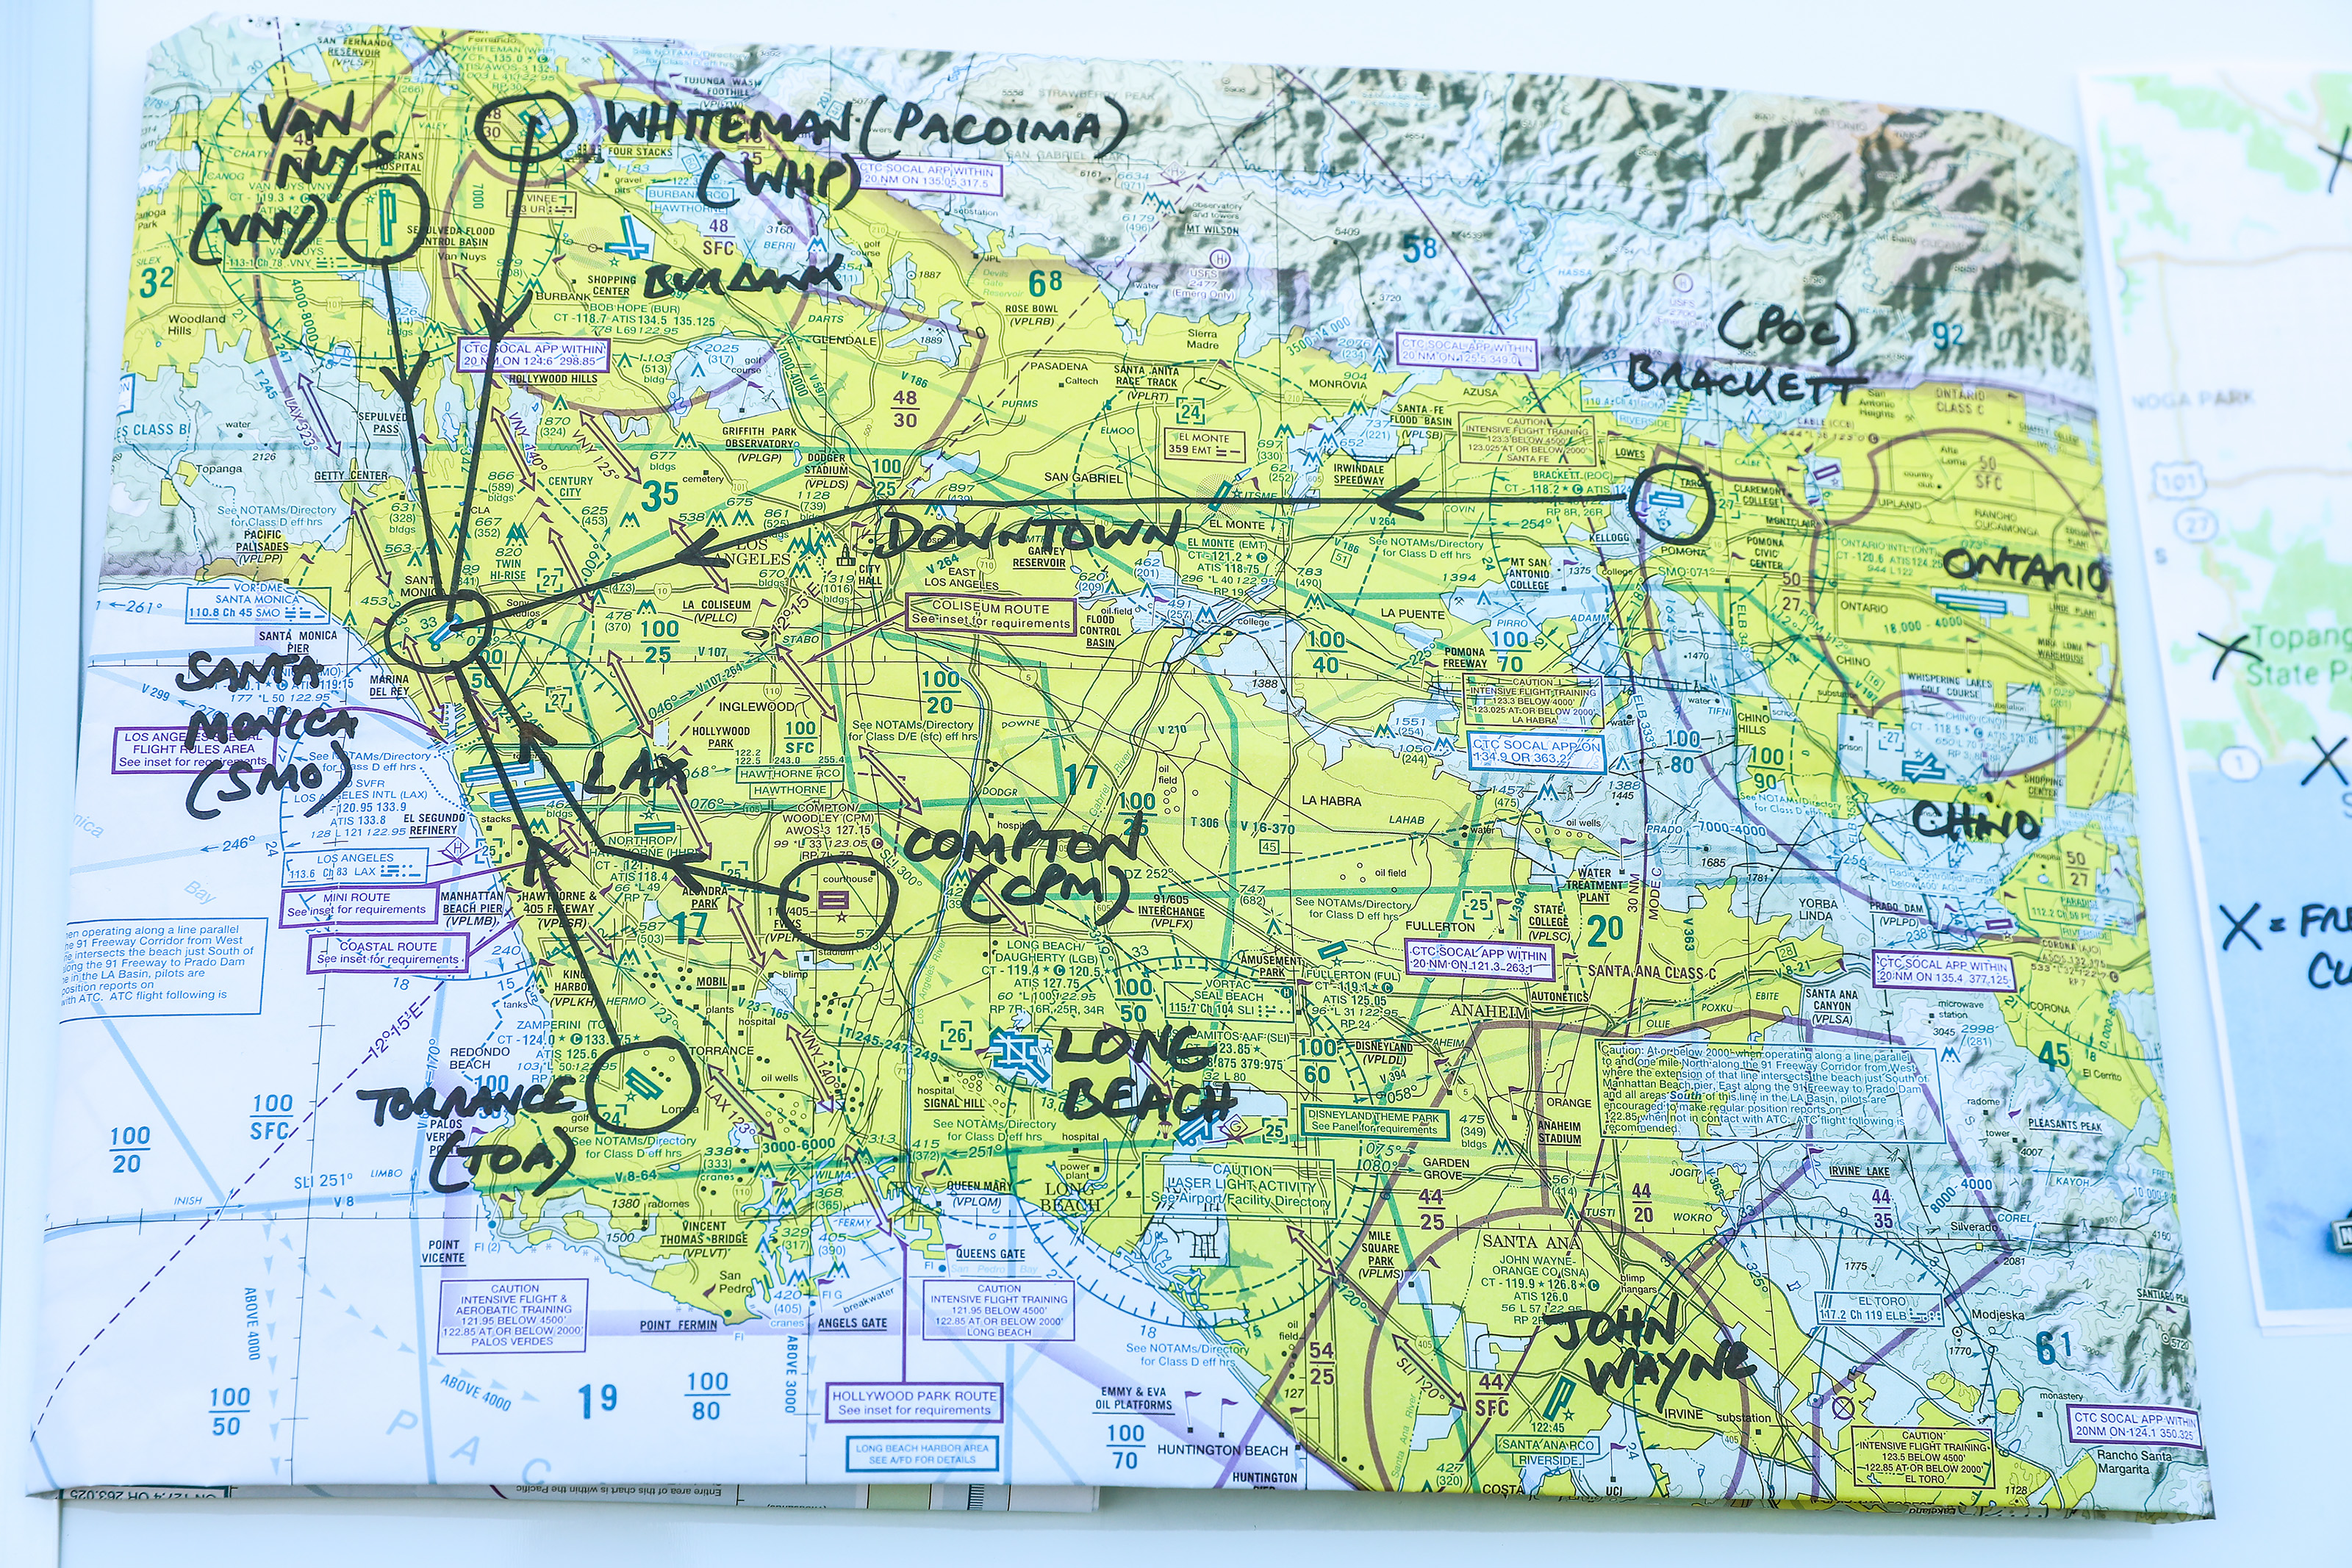 The Disaster Airlift Response Team maps out its strategy for providing air transportation in the event of a natural disaster that takes out the Los Angeles regional freeway system. Photo by Roxanne Schorbach at Schorbach.com.